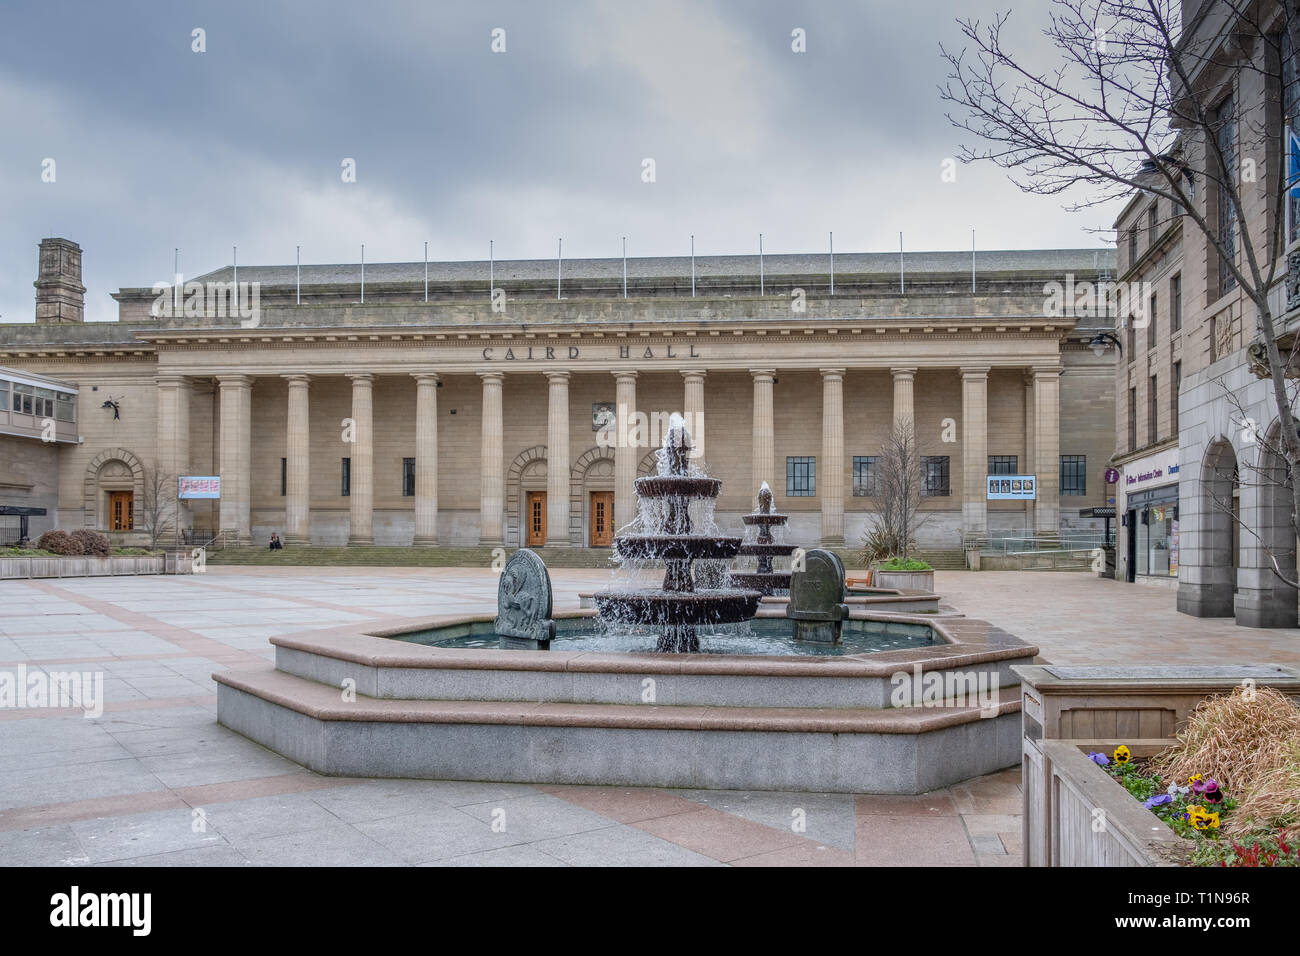 Dundee, Scotland, UK - March 22, 2019: Looking over the square past two fountains sits the impressive Caird Halls in the city centre of Dundee Scotlan - Stock Image